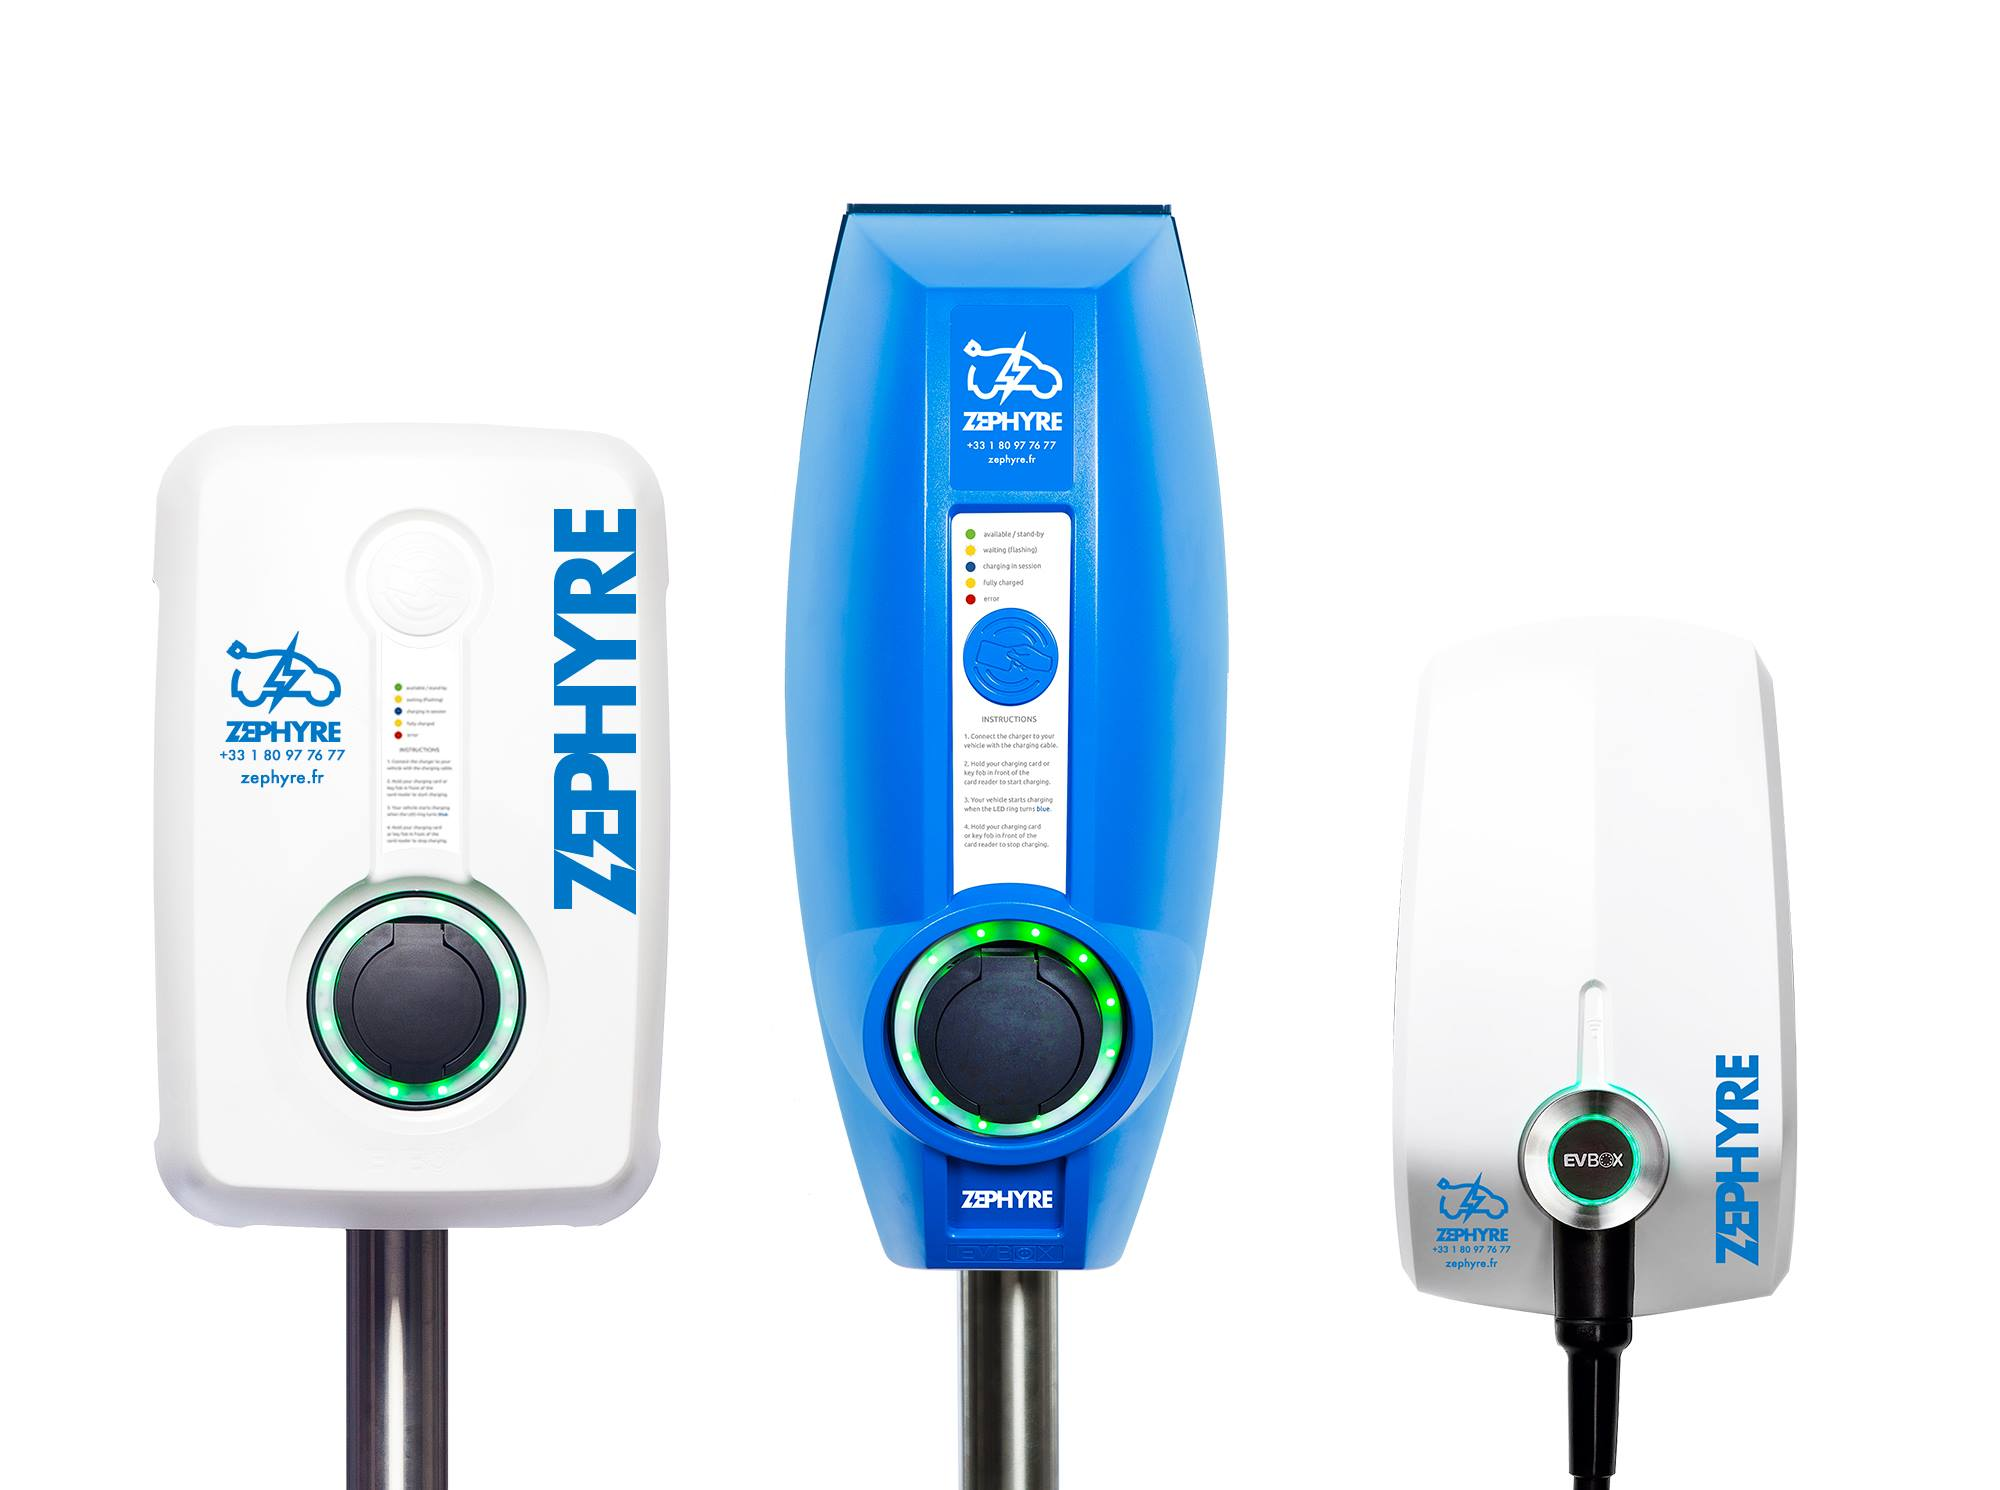 Welcome to Zephyre and their custom charging station wallbox